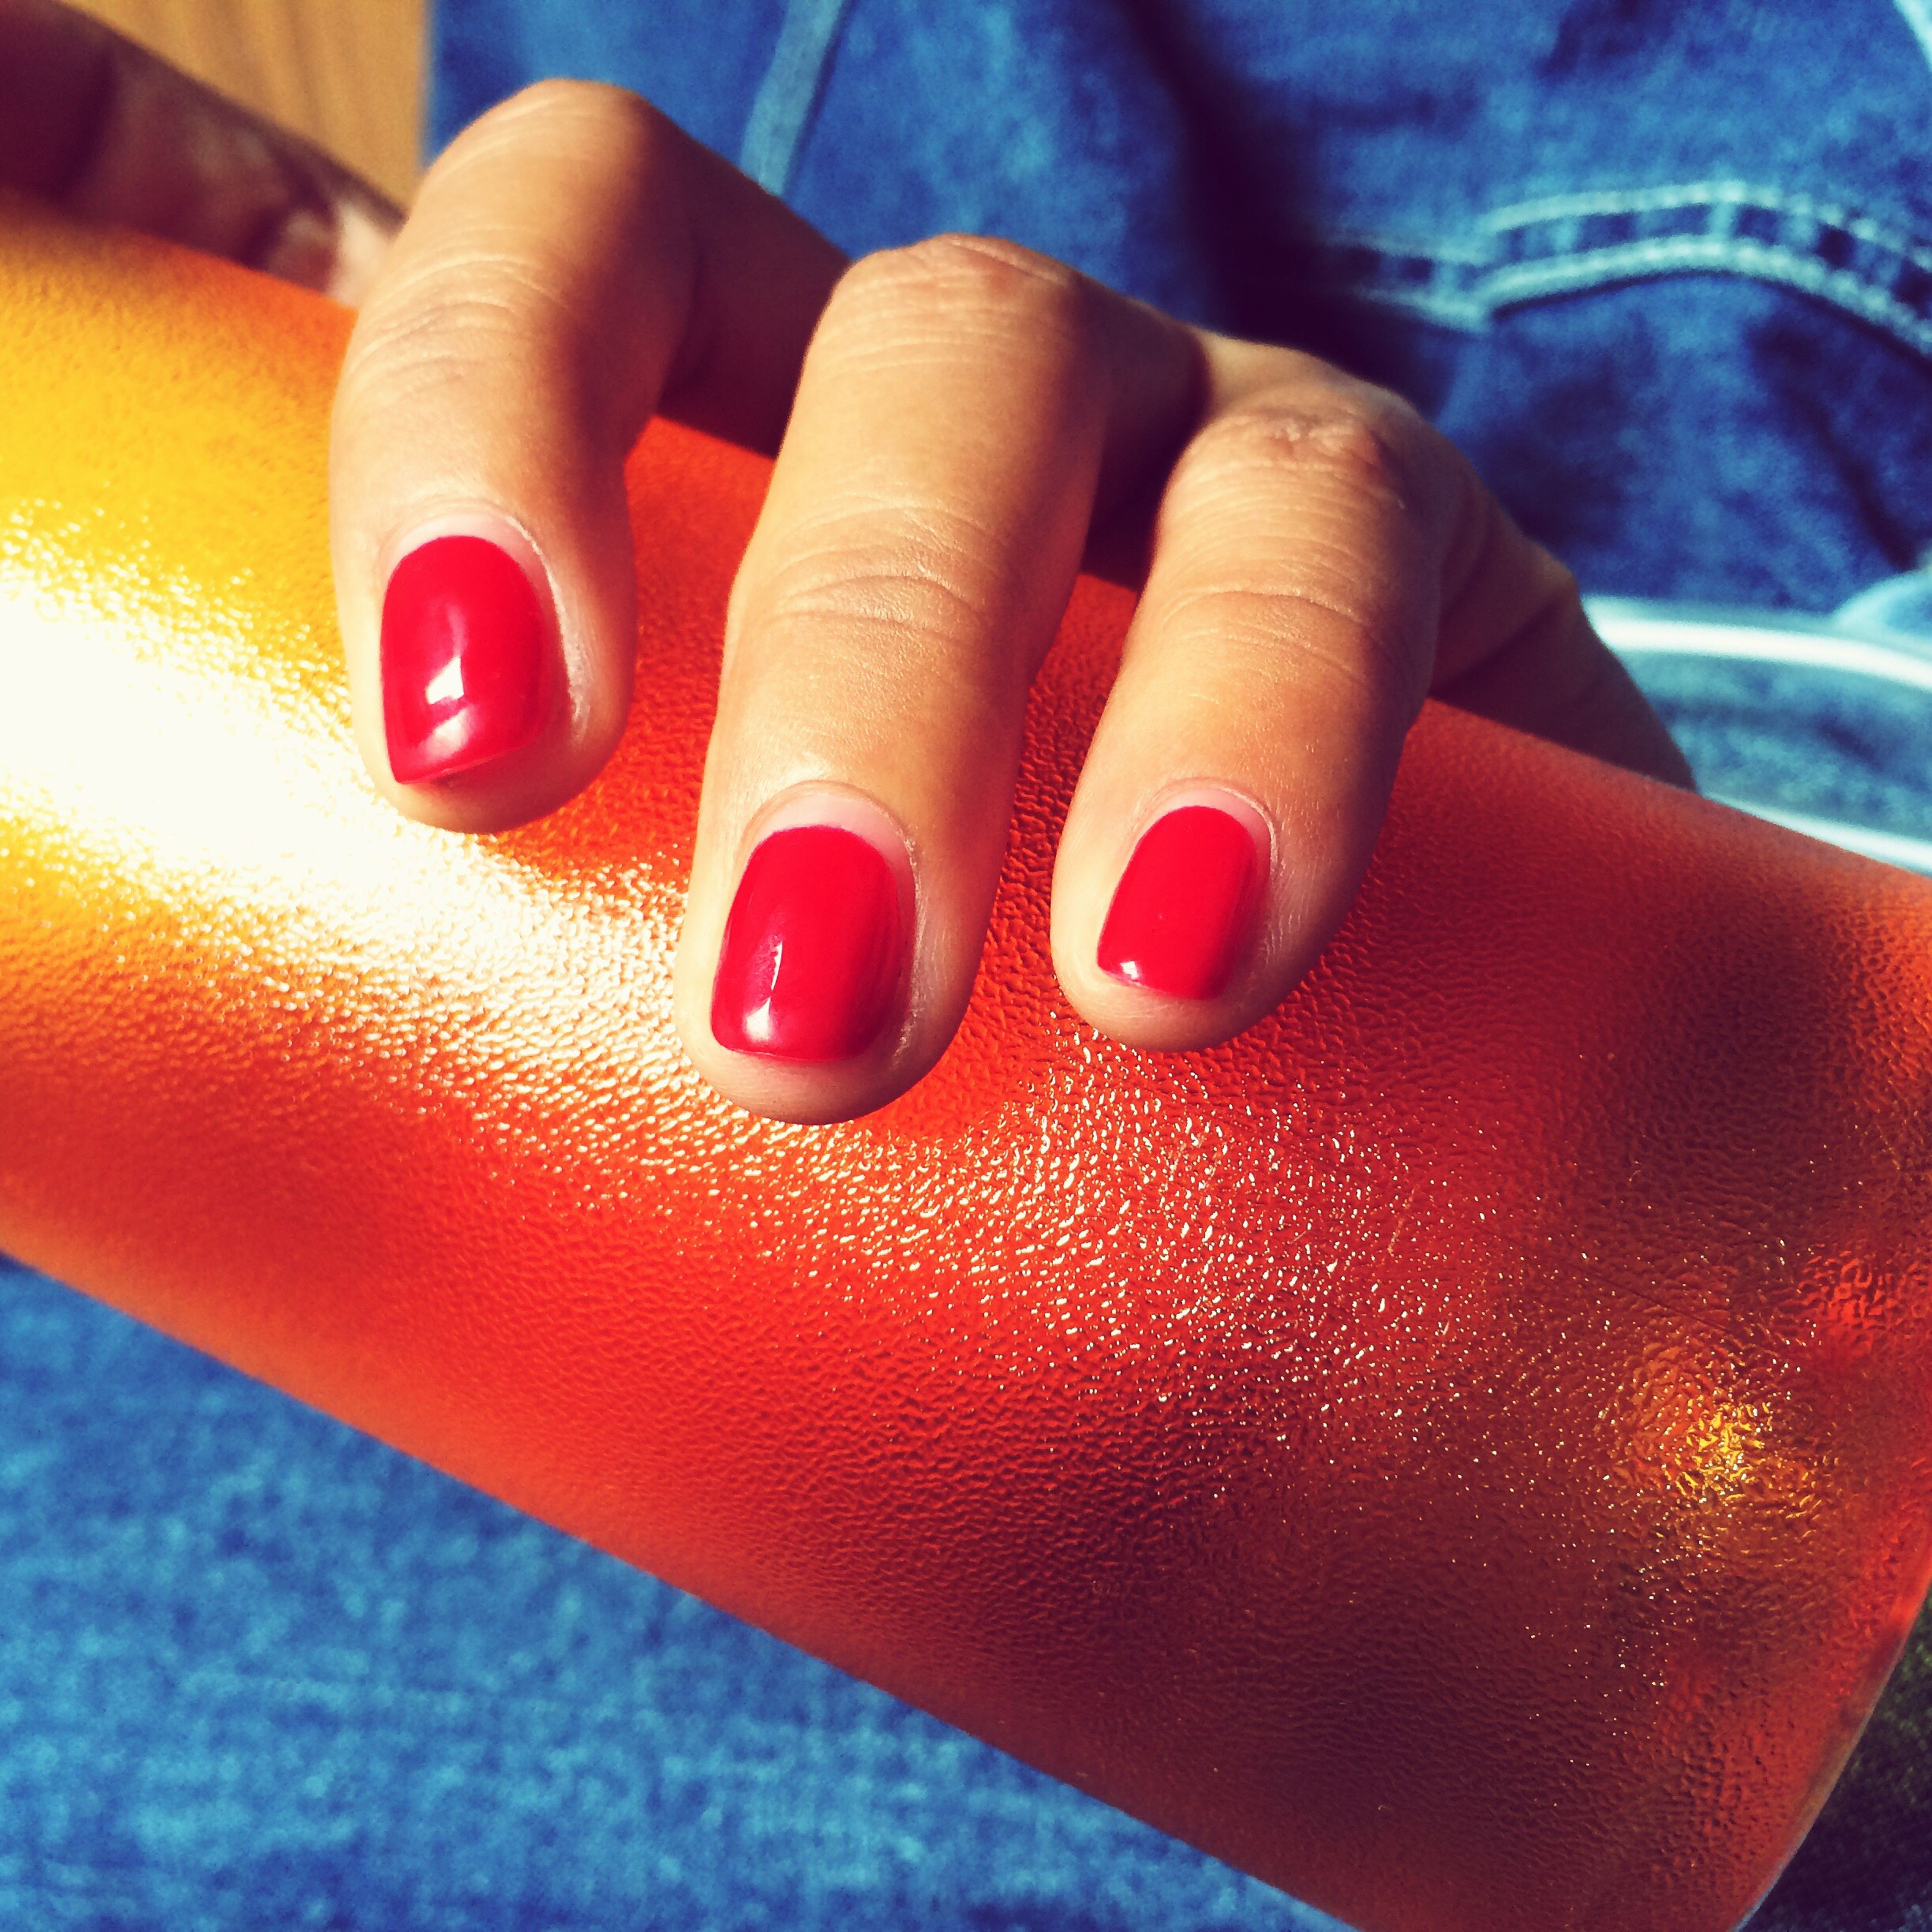 indoors, person, red, part of, close-up, high angle view, multi colored, unrecognizable person, cropped, holding, food and drink, low section, still life, selective focus, table, human finger